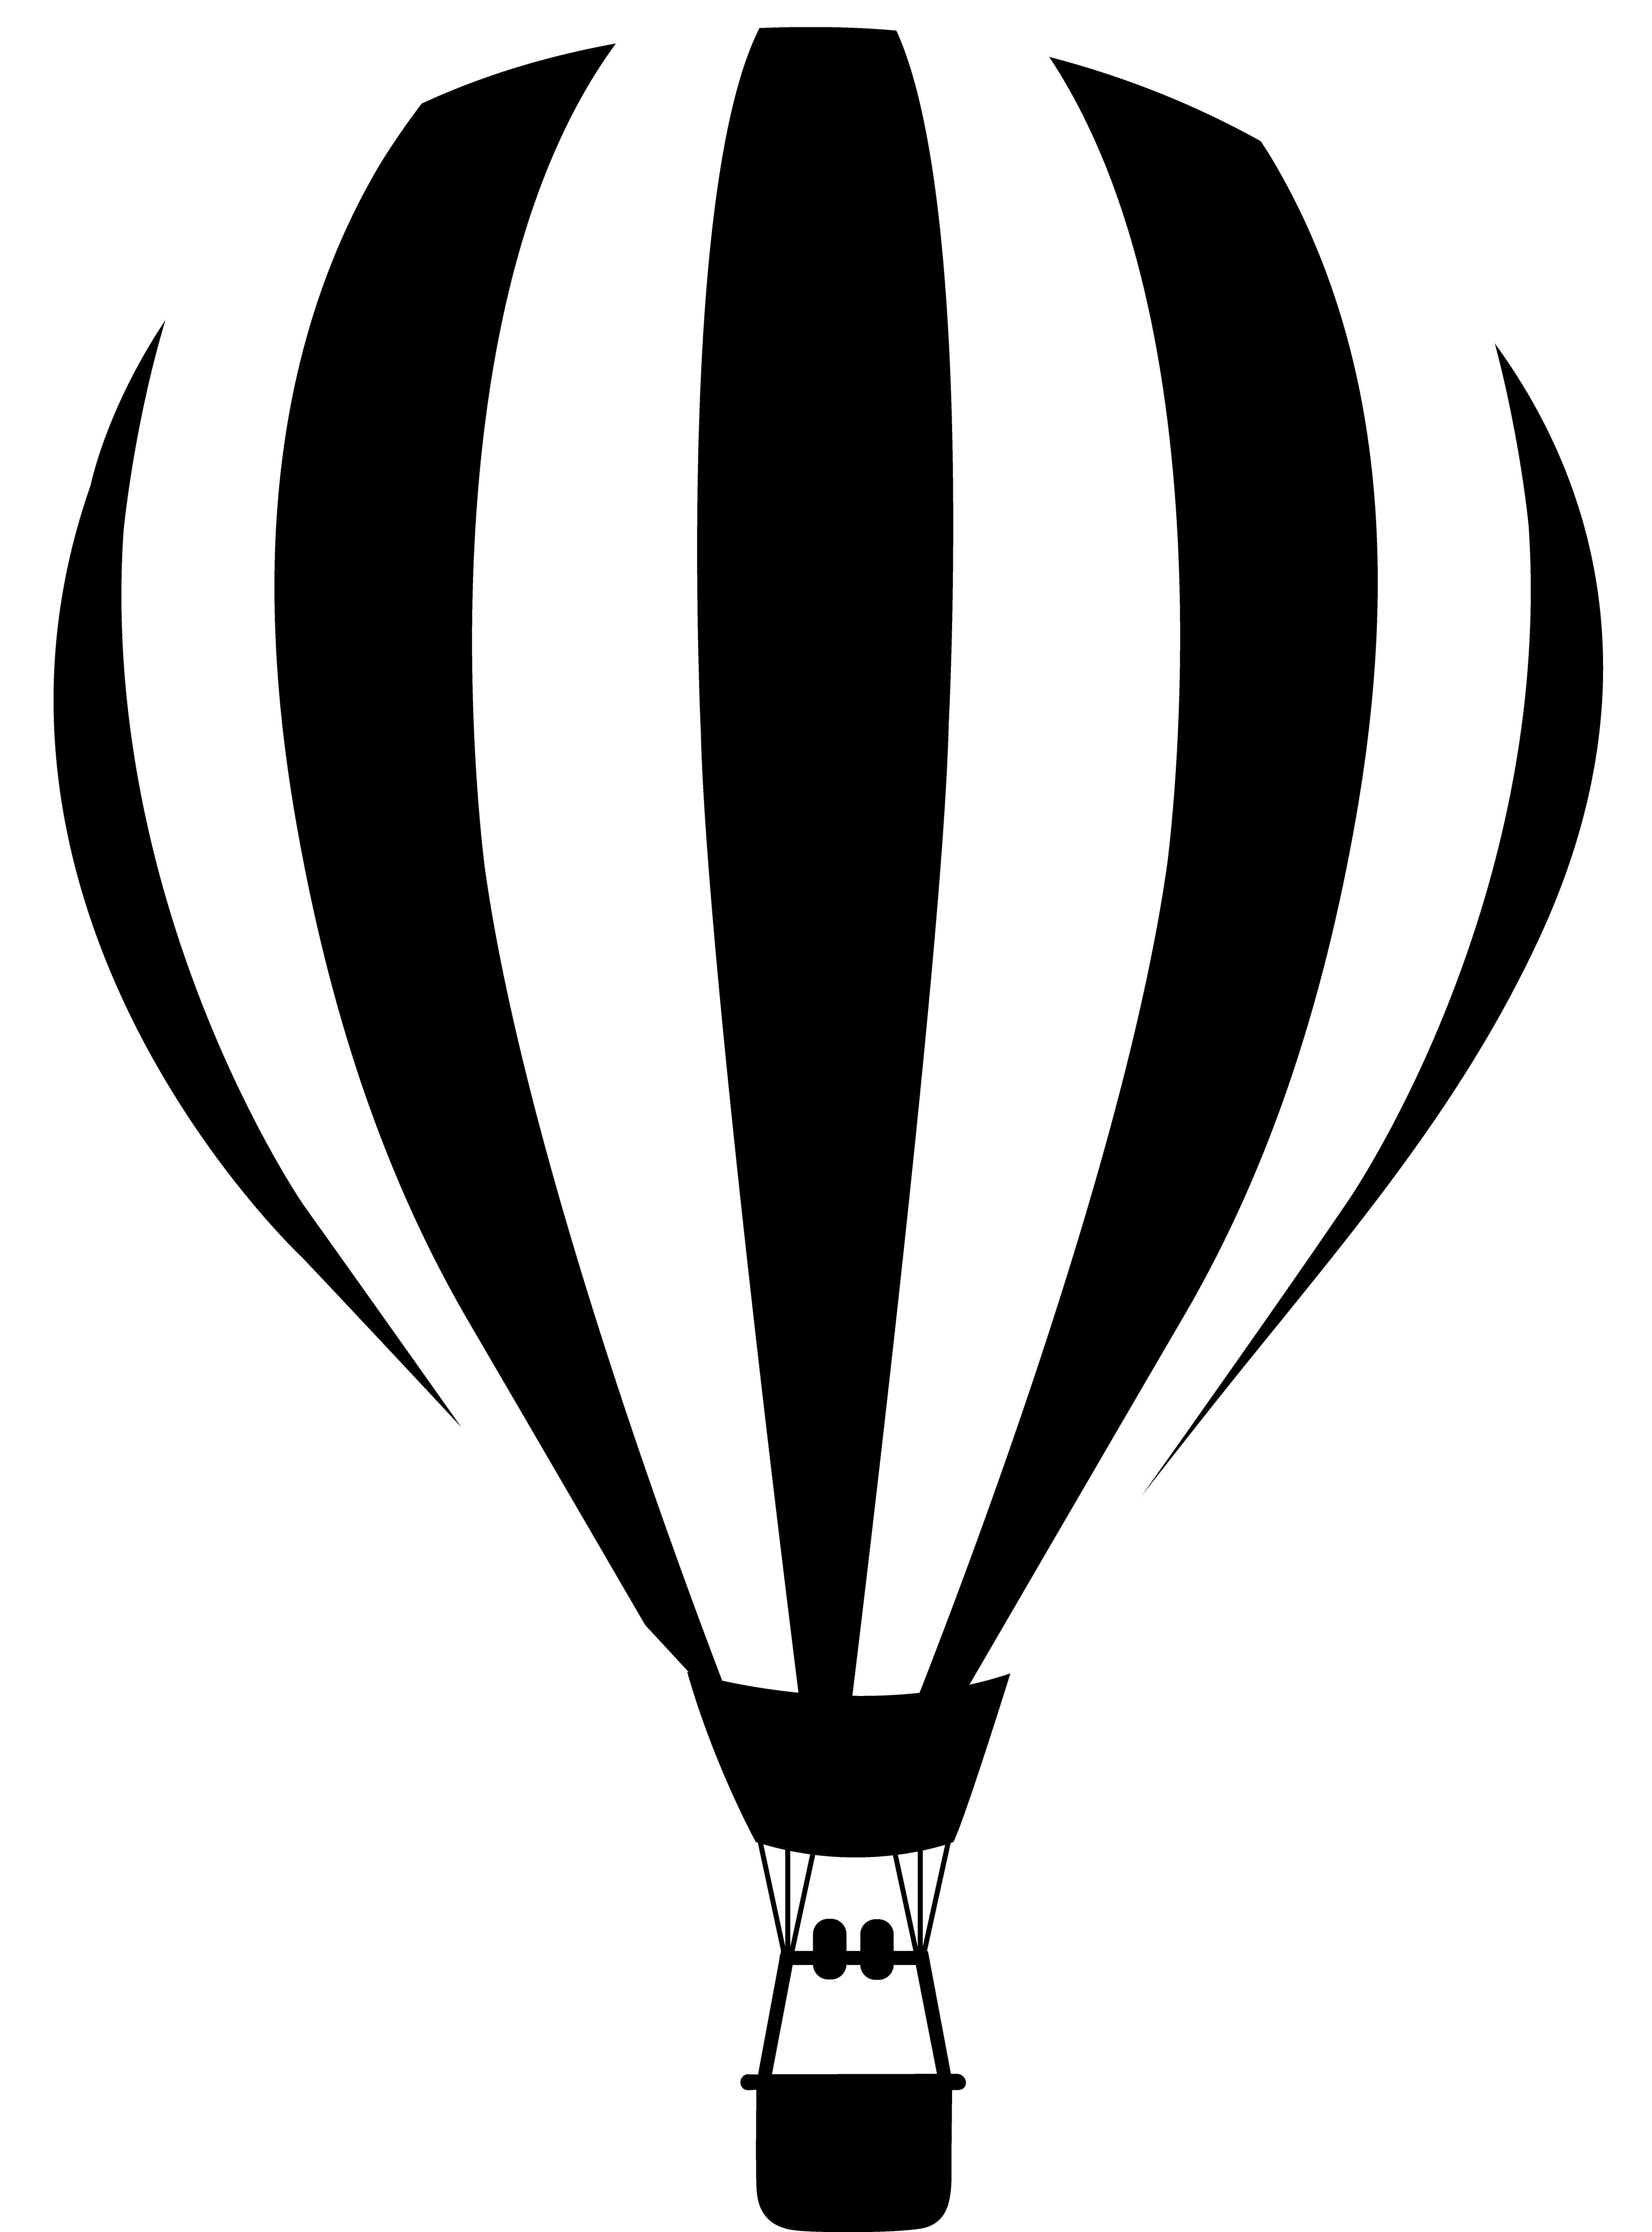 black-and-white-silhouette-images-Black-and-White-Striped-Hot-Air-Balloon-wallpaper-wp5403712